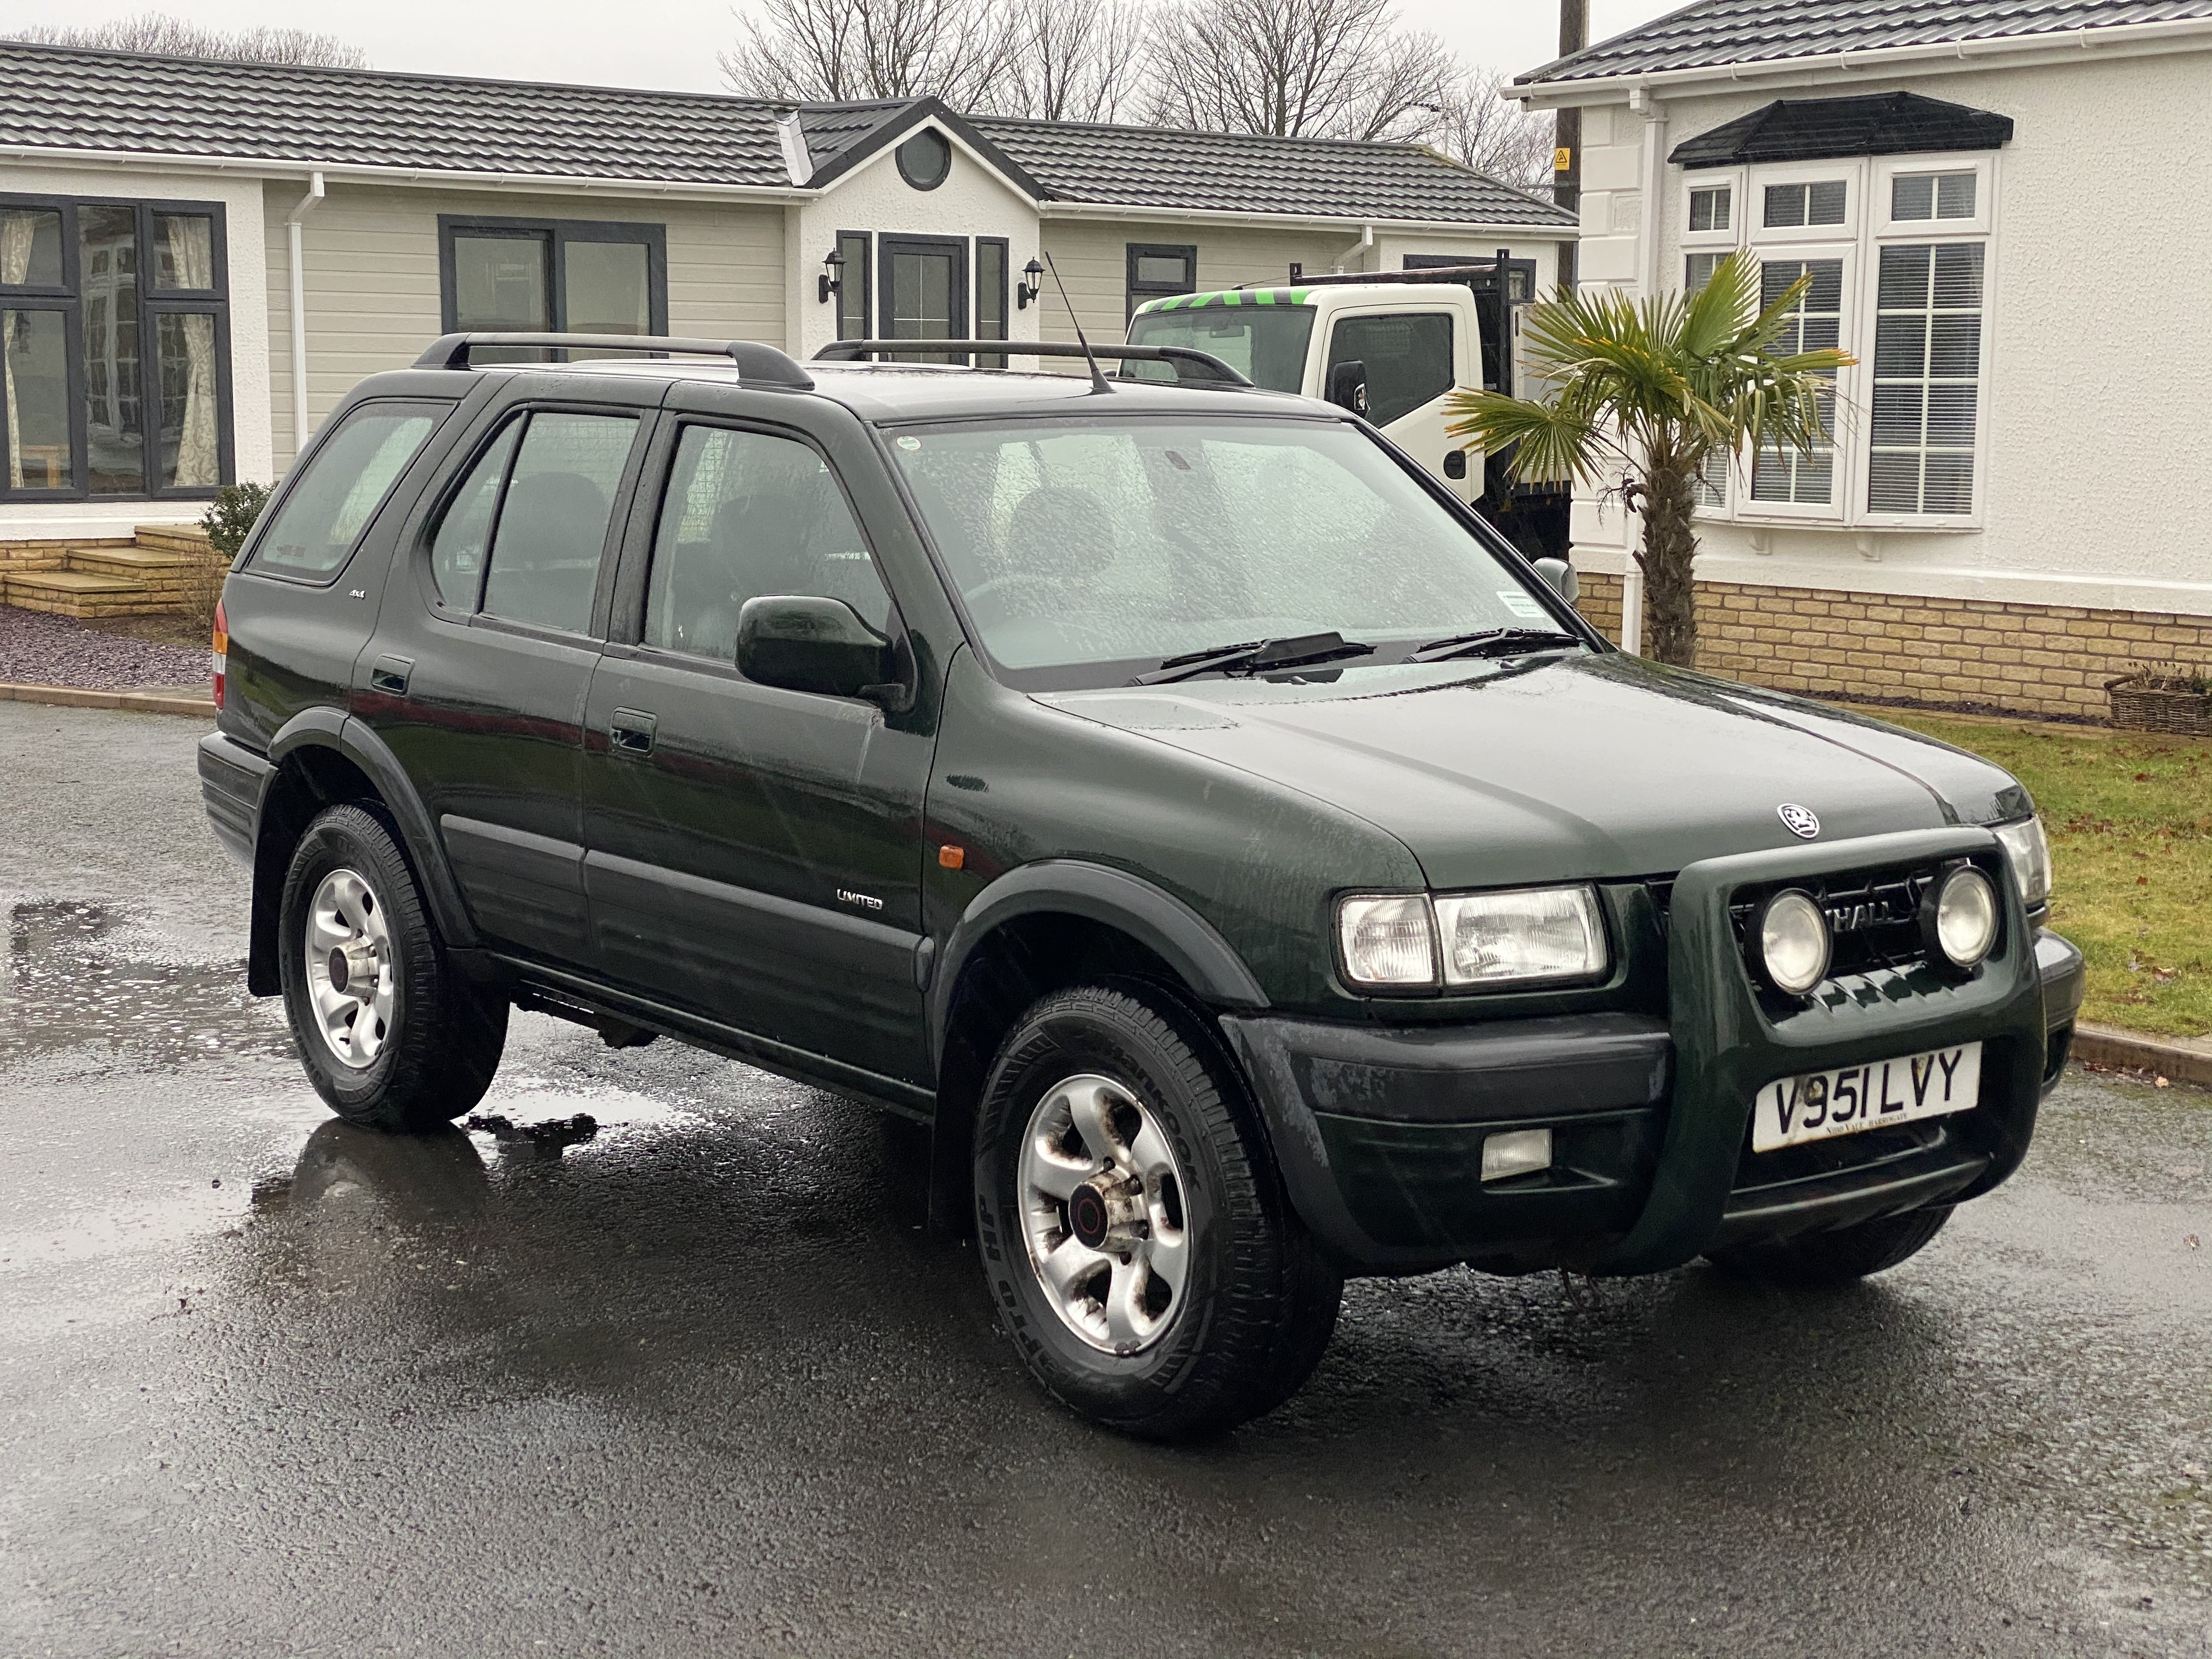 1999 Vauxhall Frontera 3.2 V6 For Sale (picture 1 of 6)